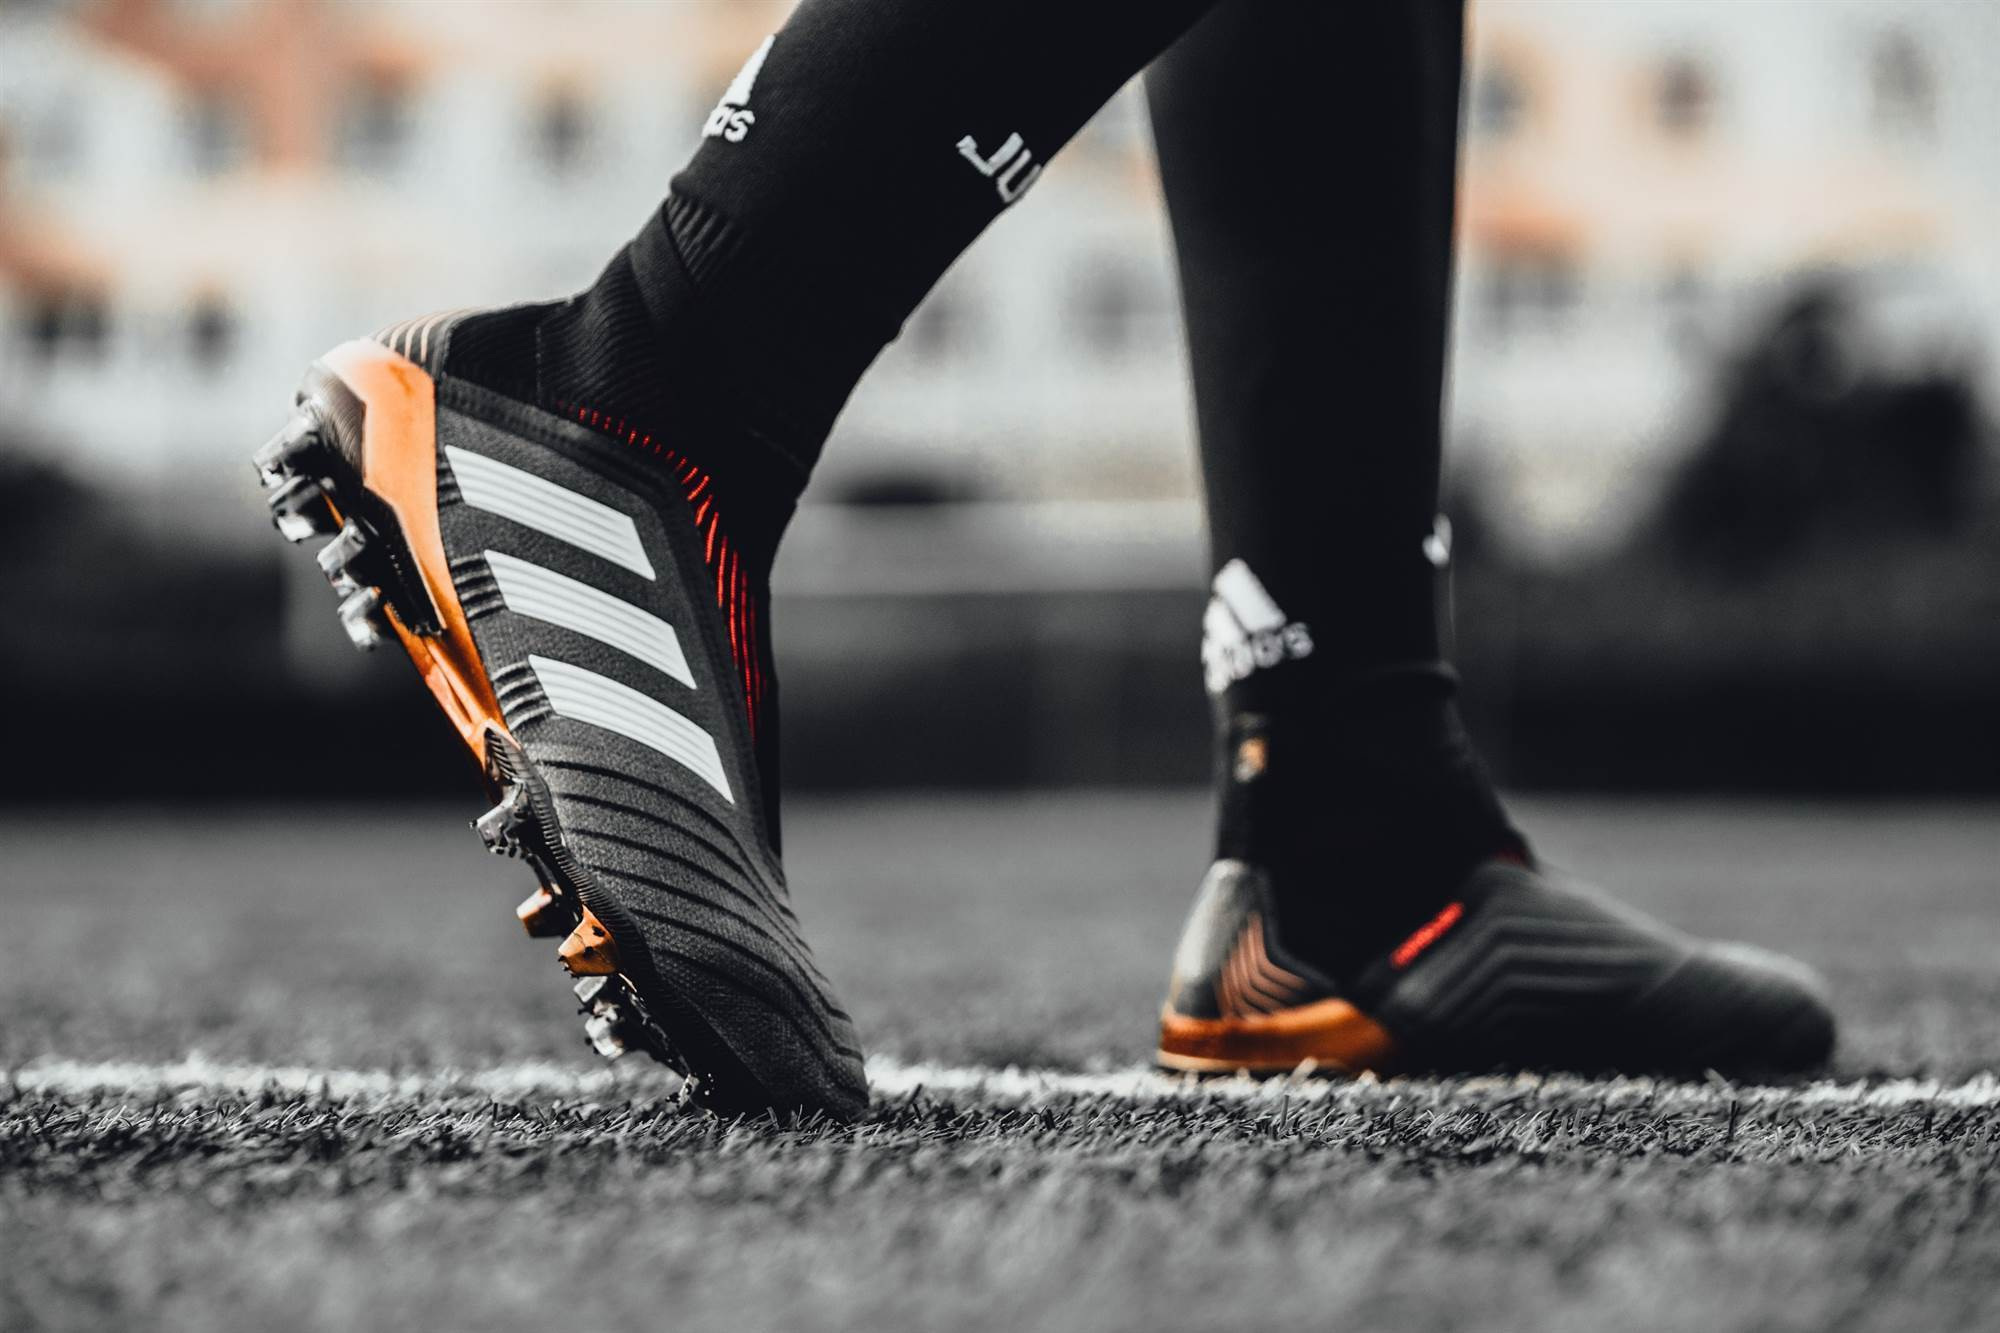 a6f2714582e2 Gallery  New adidas Predator 18+ boots unveiled - Boots - FTBL Life